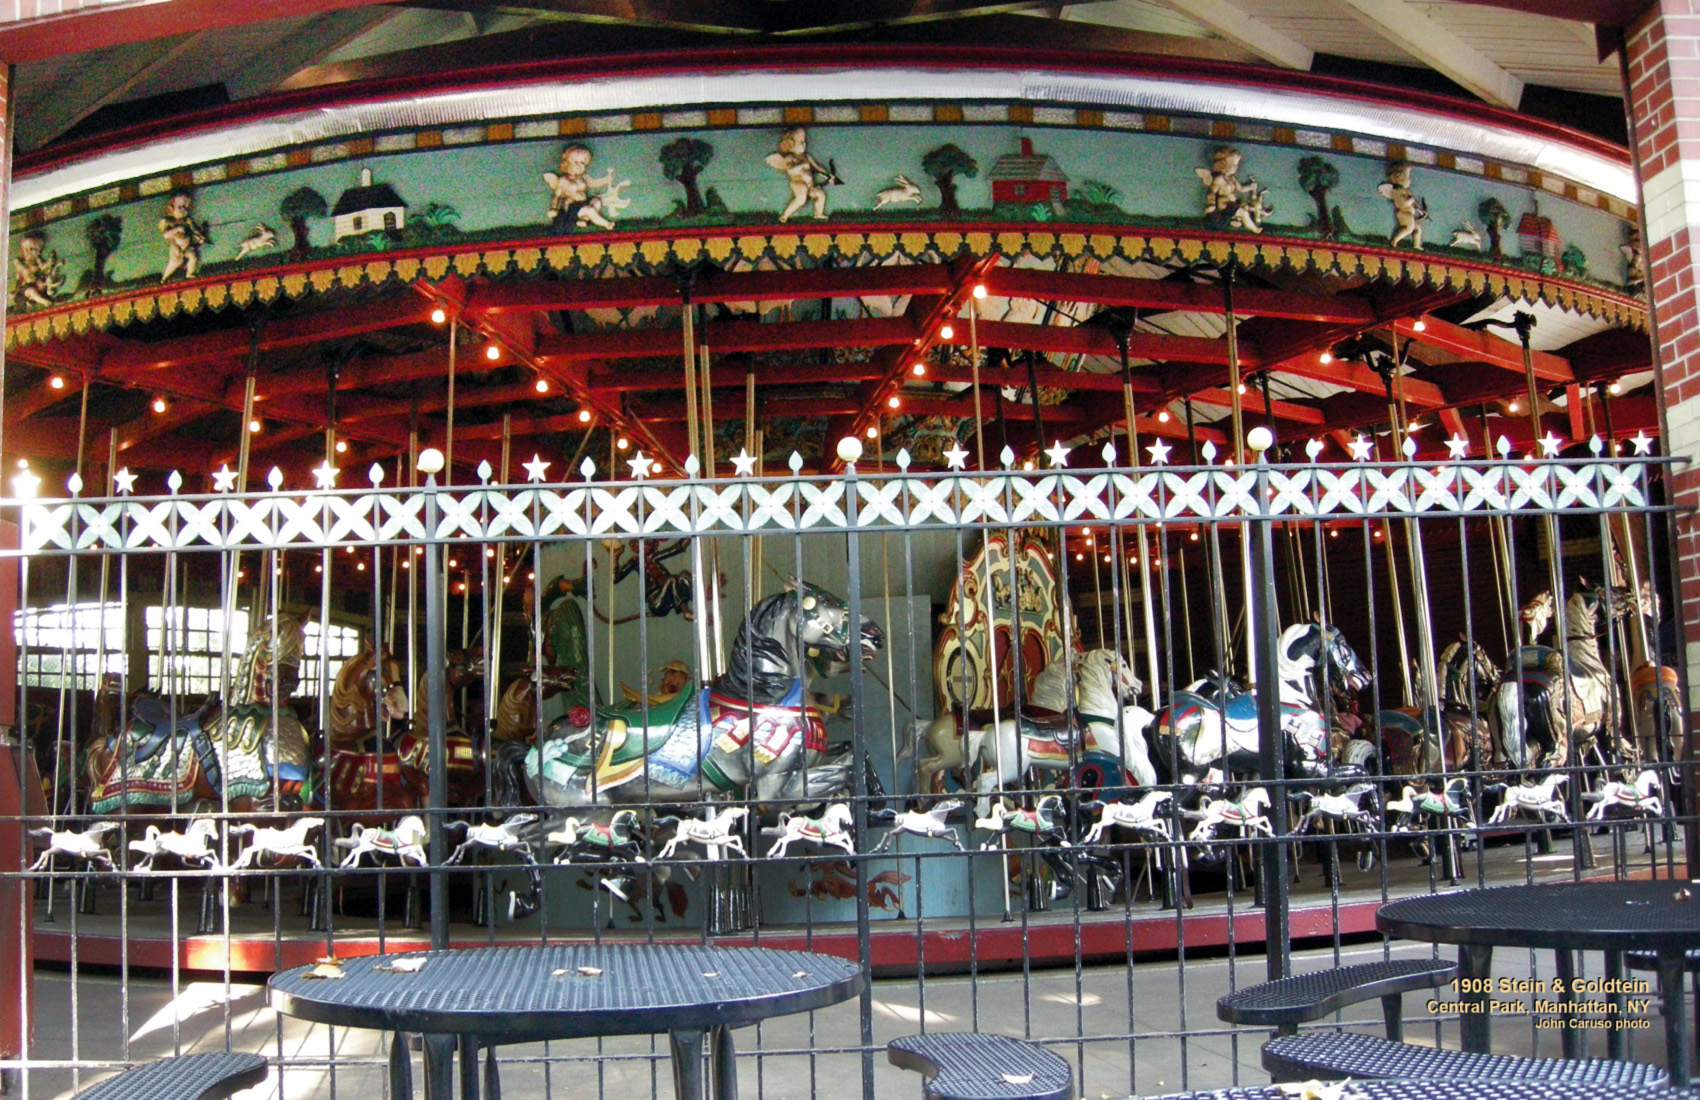 1908-Stein-and-Goldstein-carousel-Central-Park-NYC-CNT-center-May_11